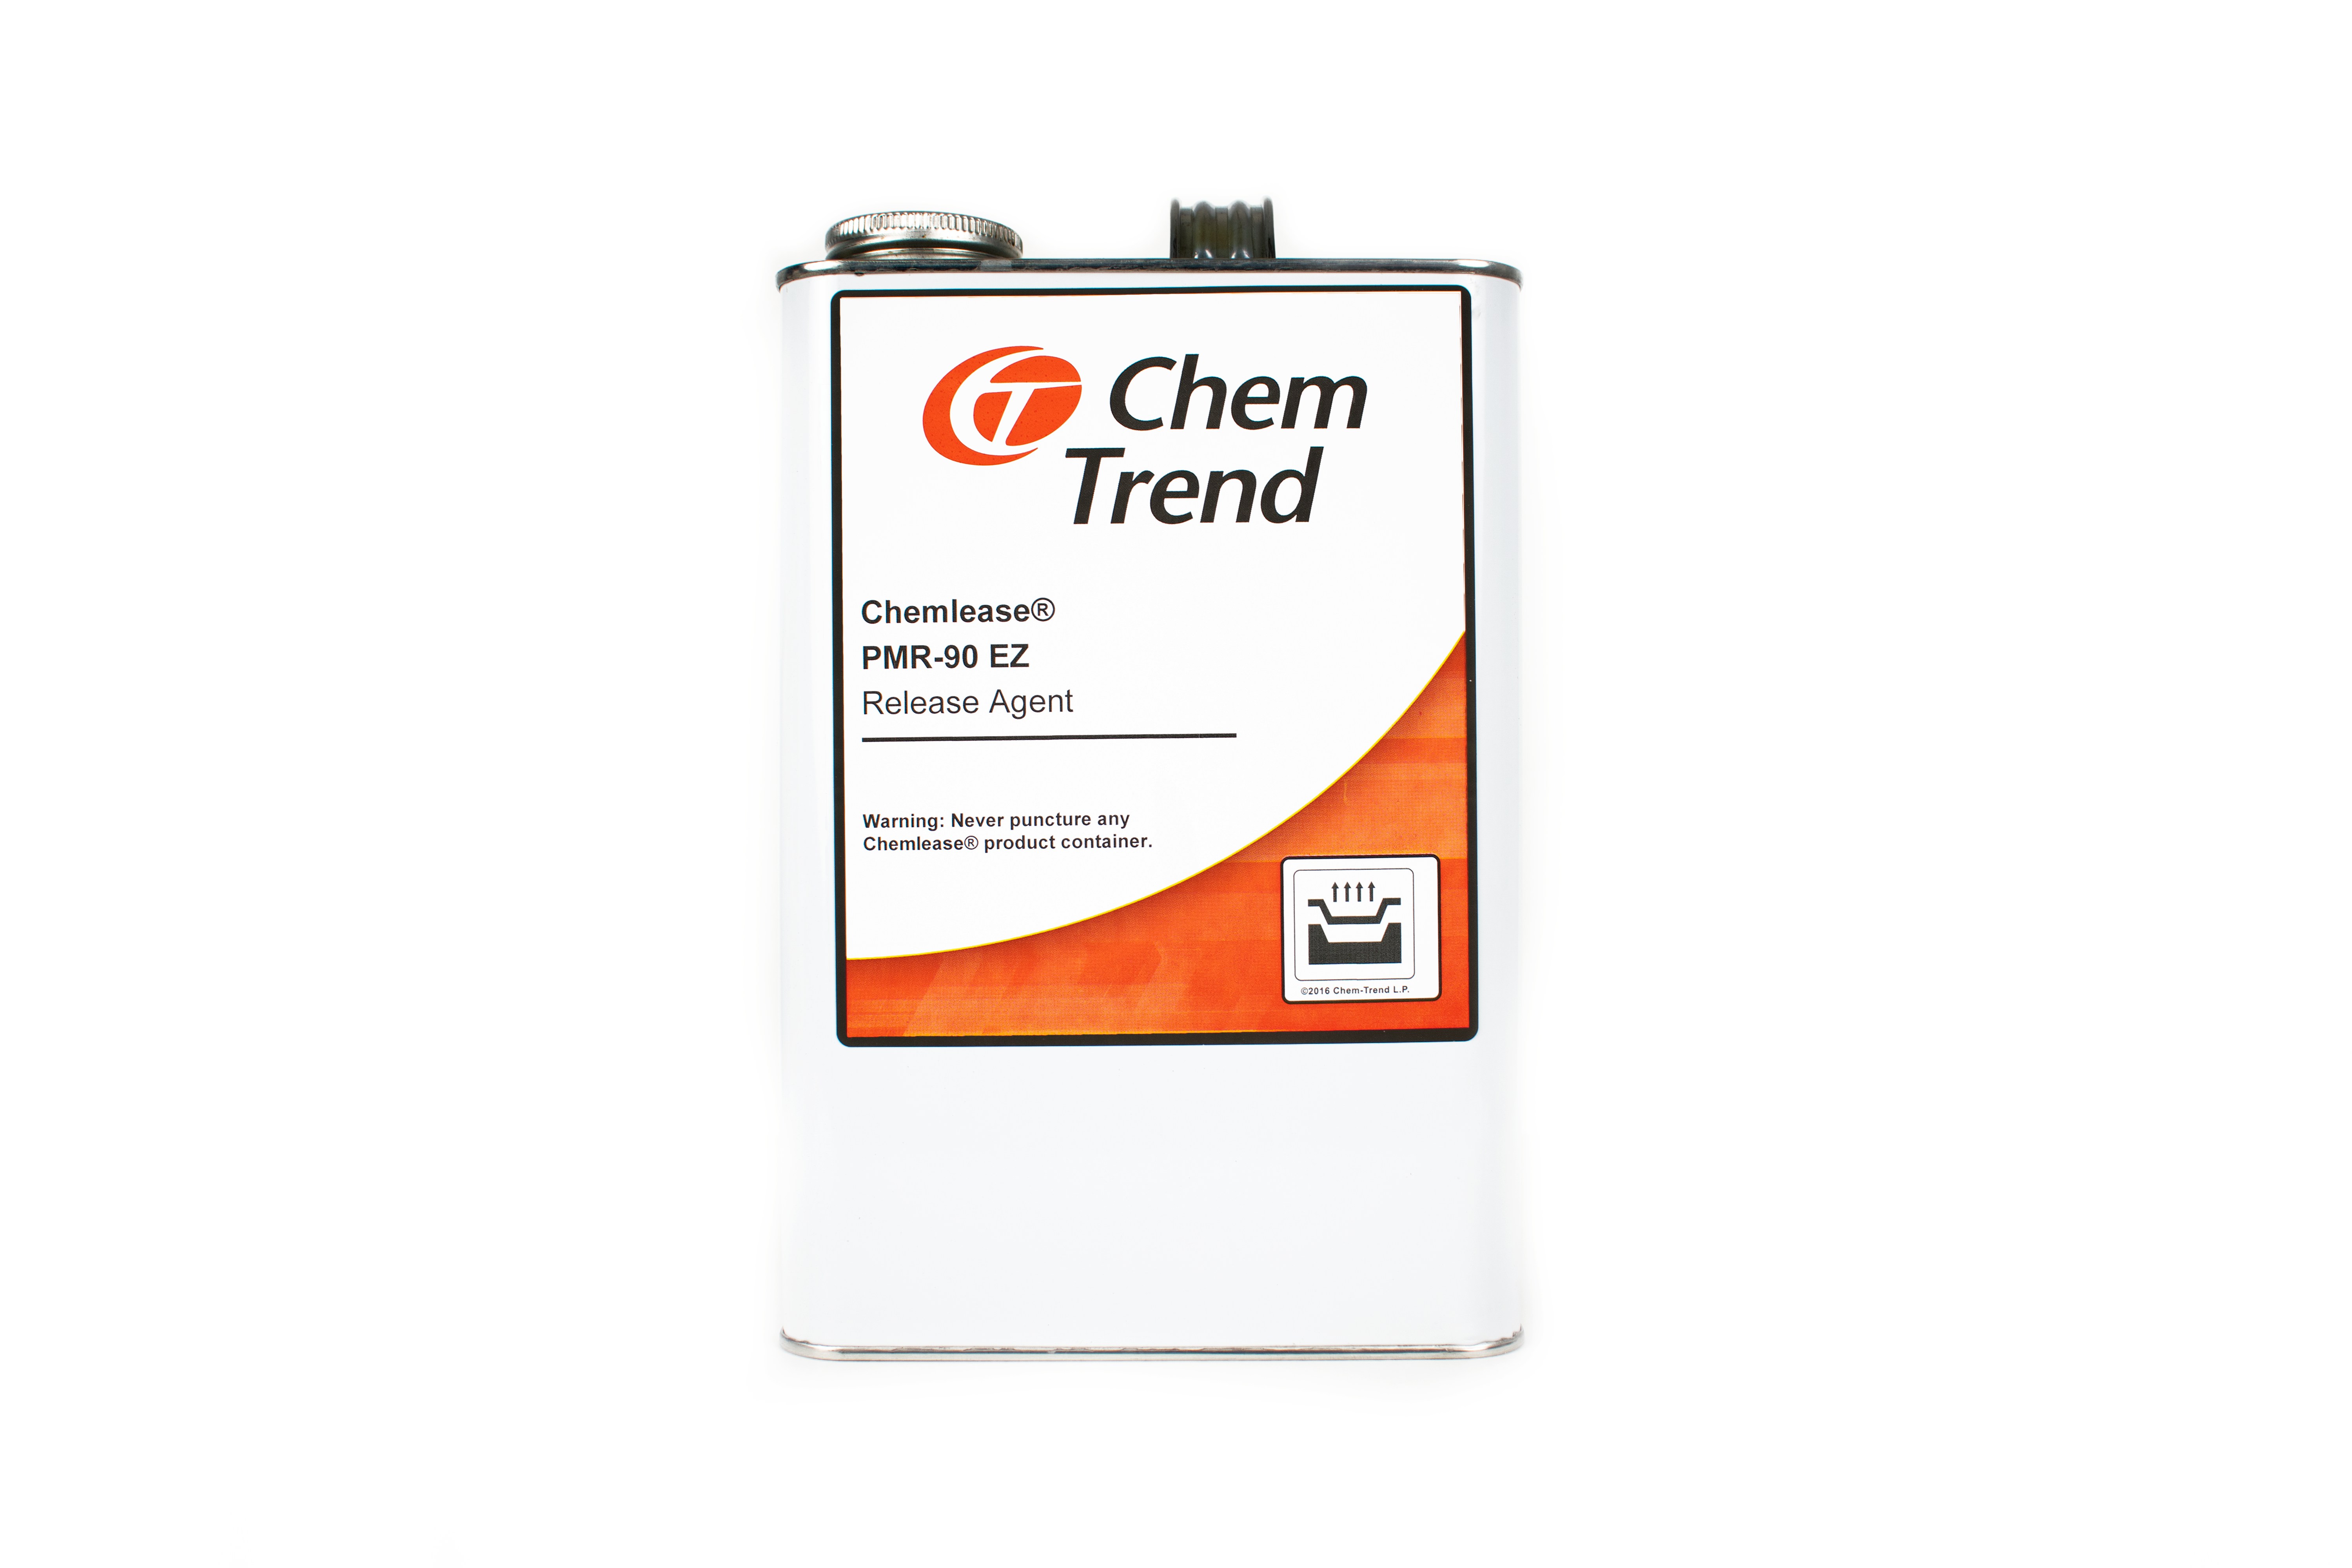 Chem Trend Release Agent Image